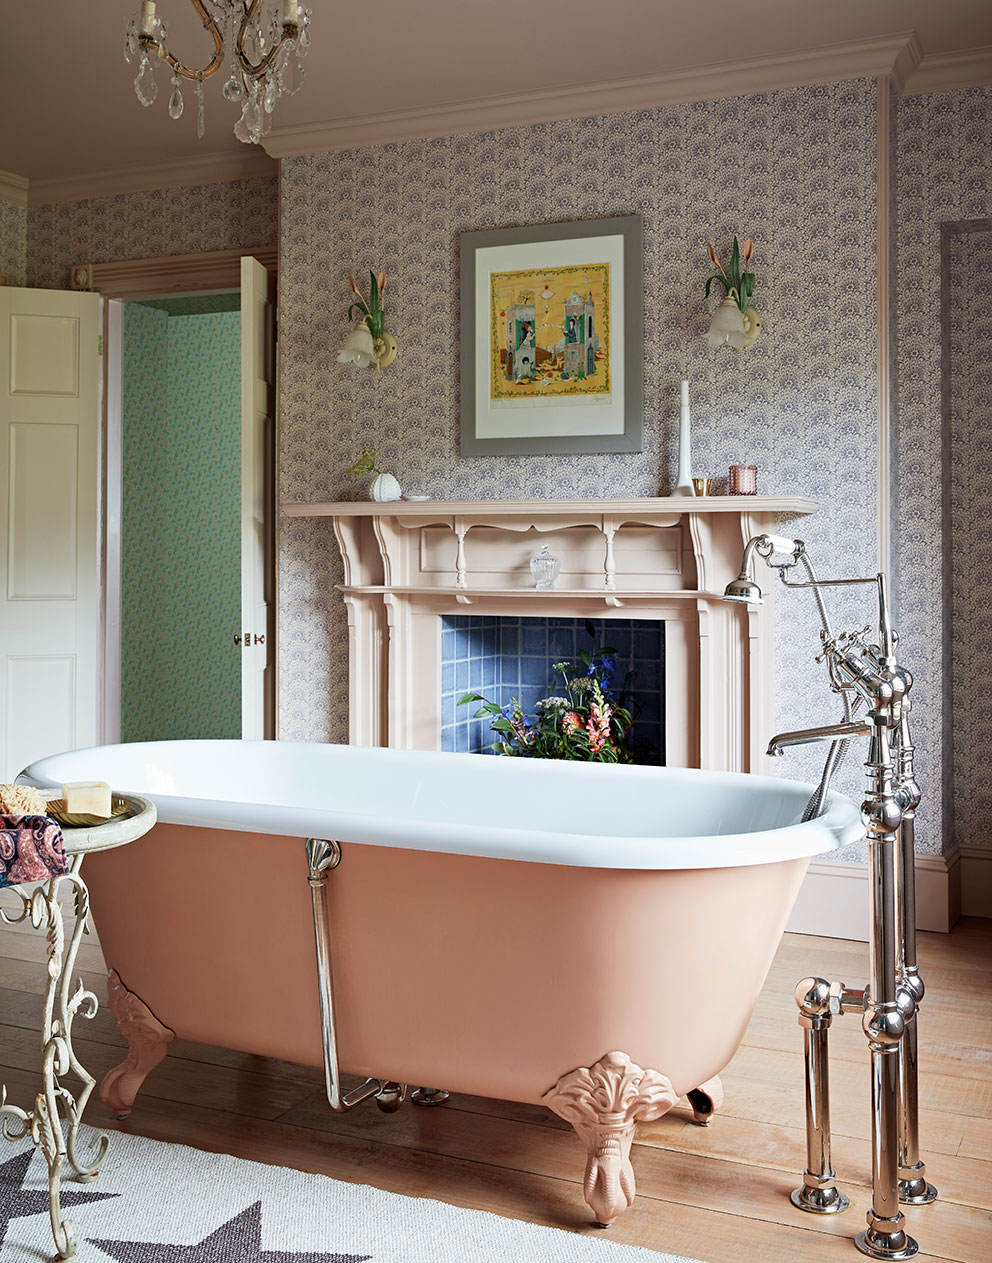 Pink roll top bath standing in centre of bathroom with patterned wallpaper